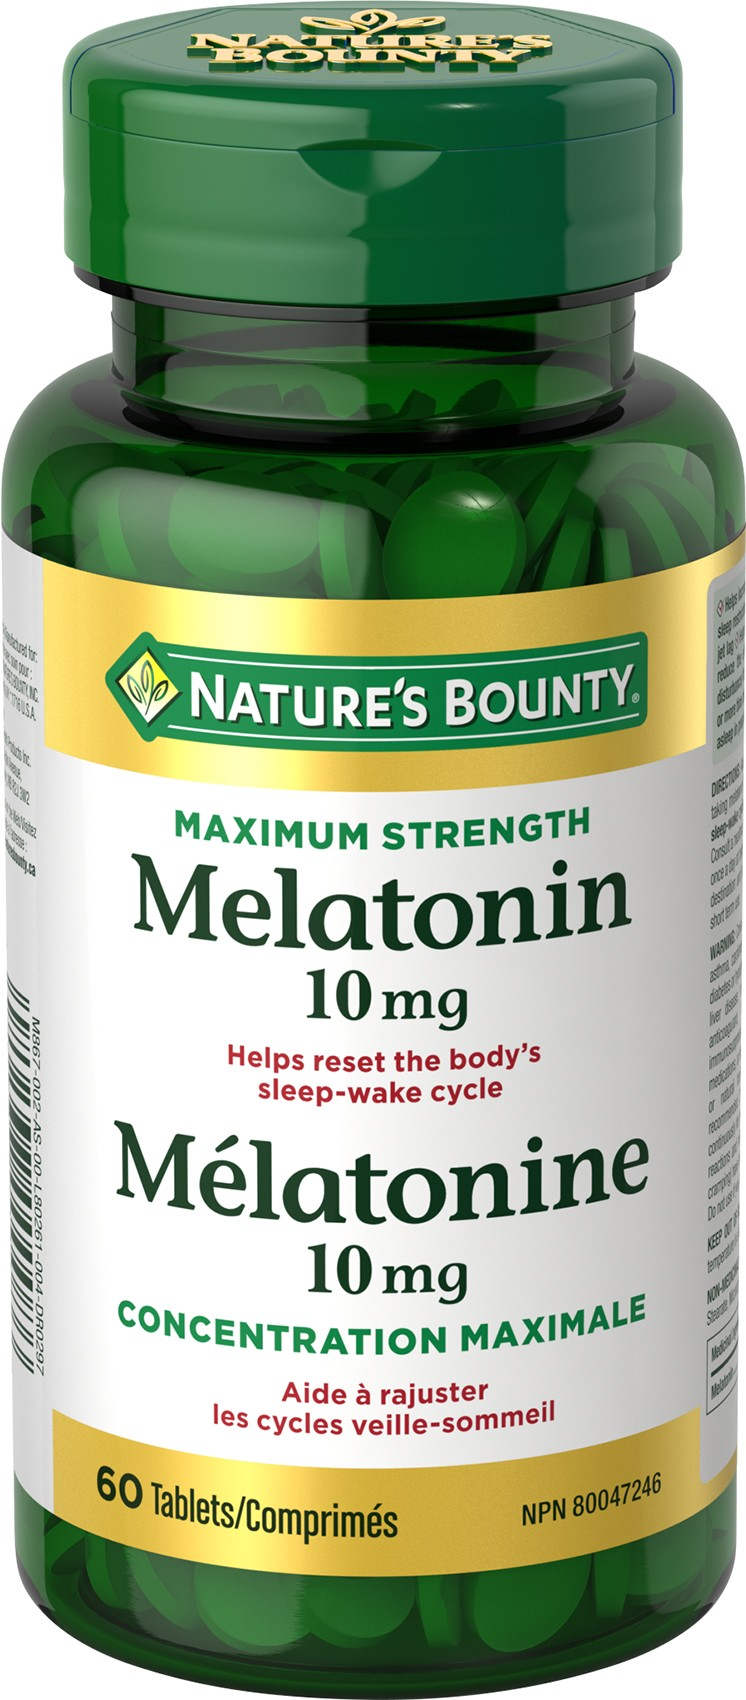 Mélatonine 10 mg